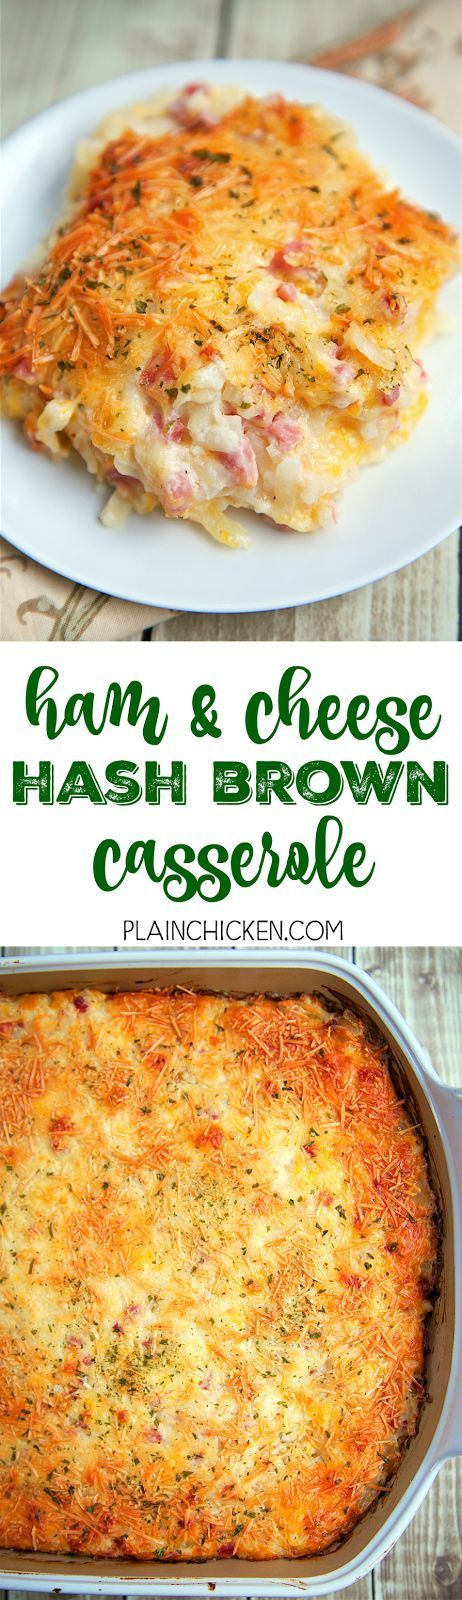 Ham and Cheese Hash Brown Casserole - only 6 ingredients!! Hash browns, ham, parmesan cheese, cheddar cheese, cream of potato soup, and sour cream. YUM! He took one bite and couldn't stop raving out this casserole!! Can make ahead of time and refrigerate or freeze for later. A new favorite in our house!